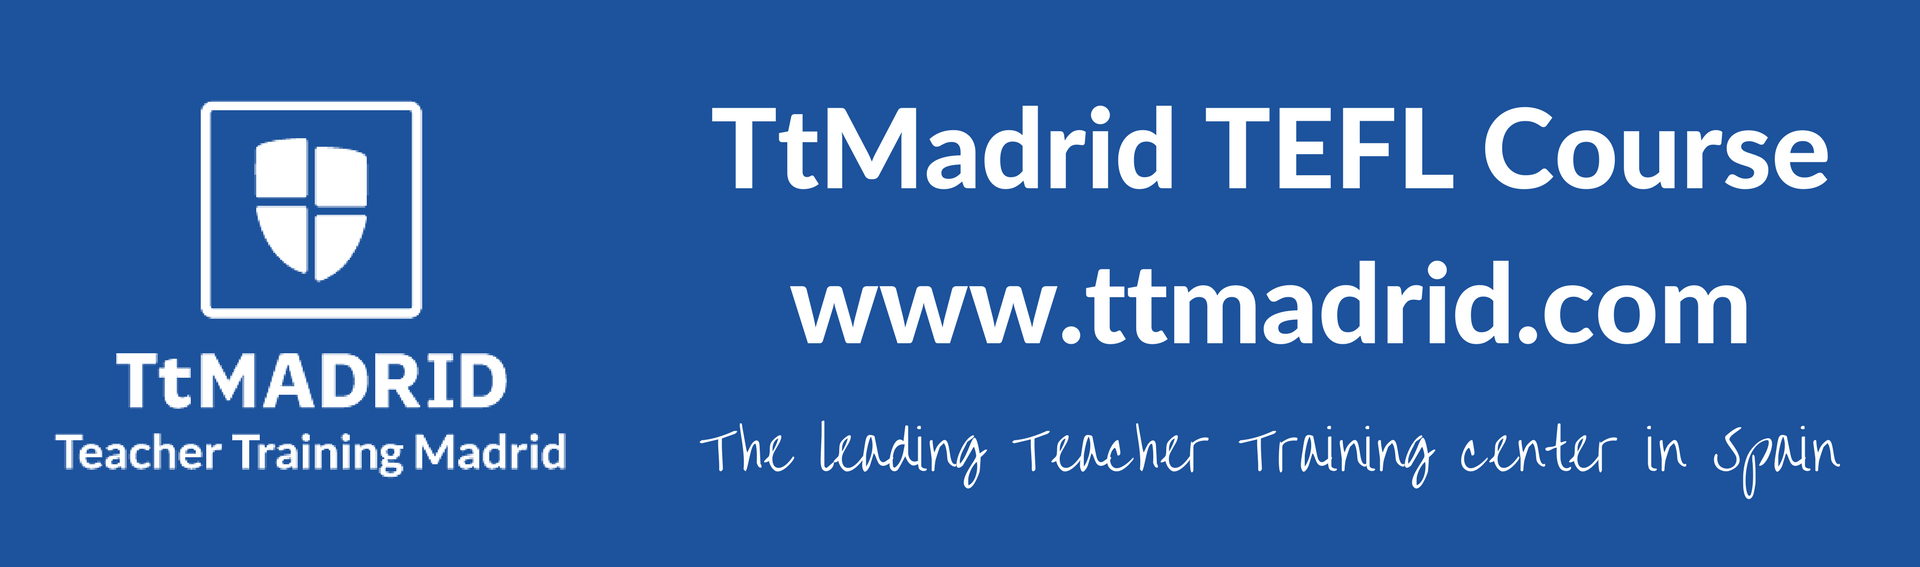 TtMadrid TEFL Course leading teacher training center in Spain